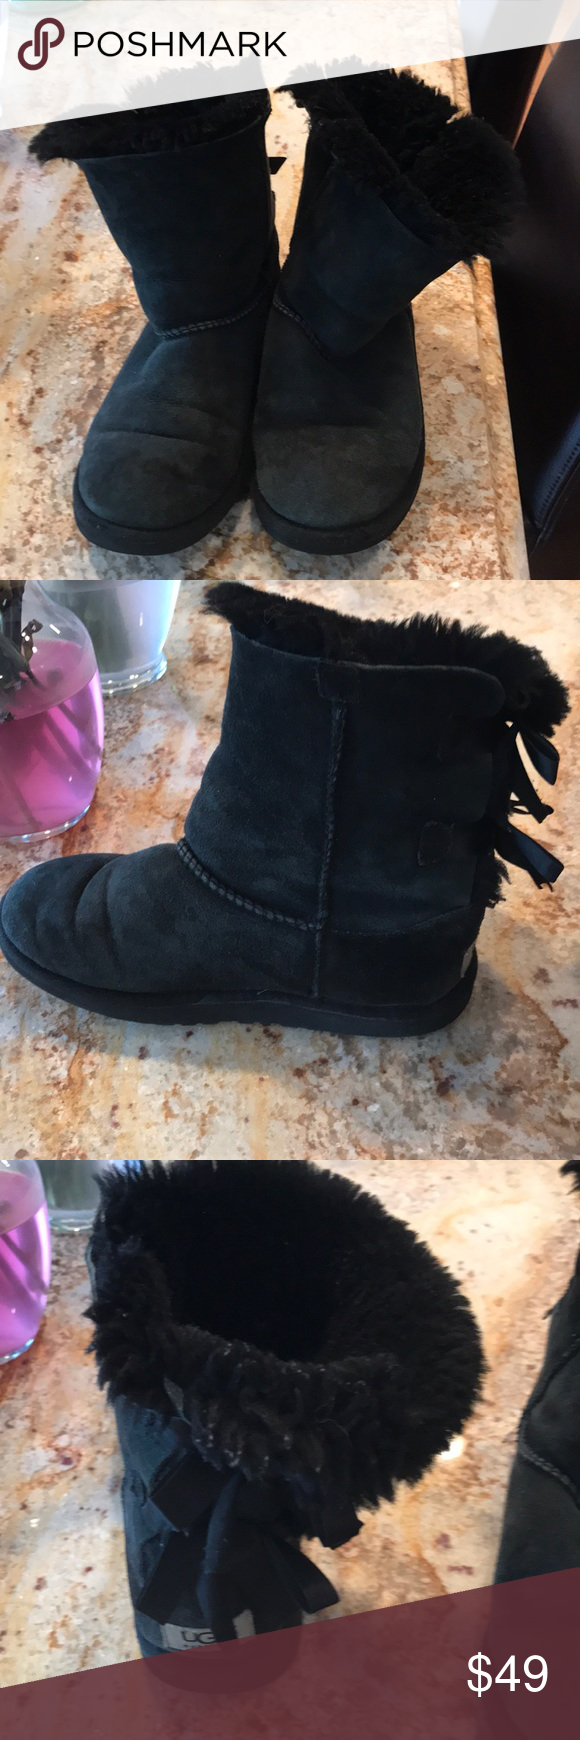 6aa33a5afb7 Ugg kids boots with ribbons on back These boots were gently used and ...